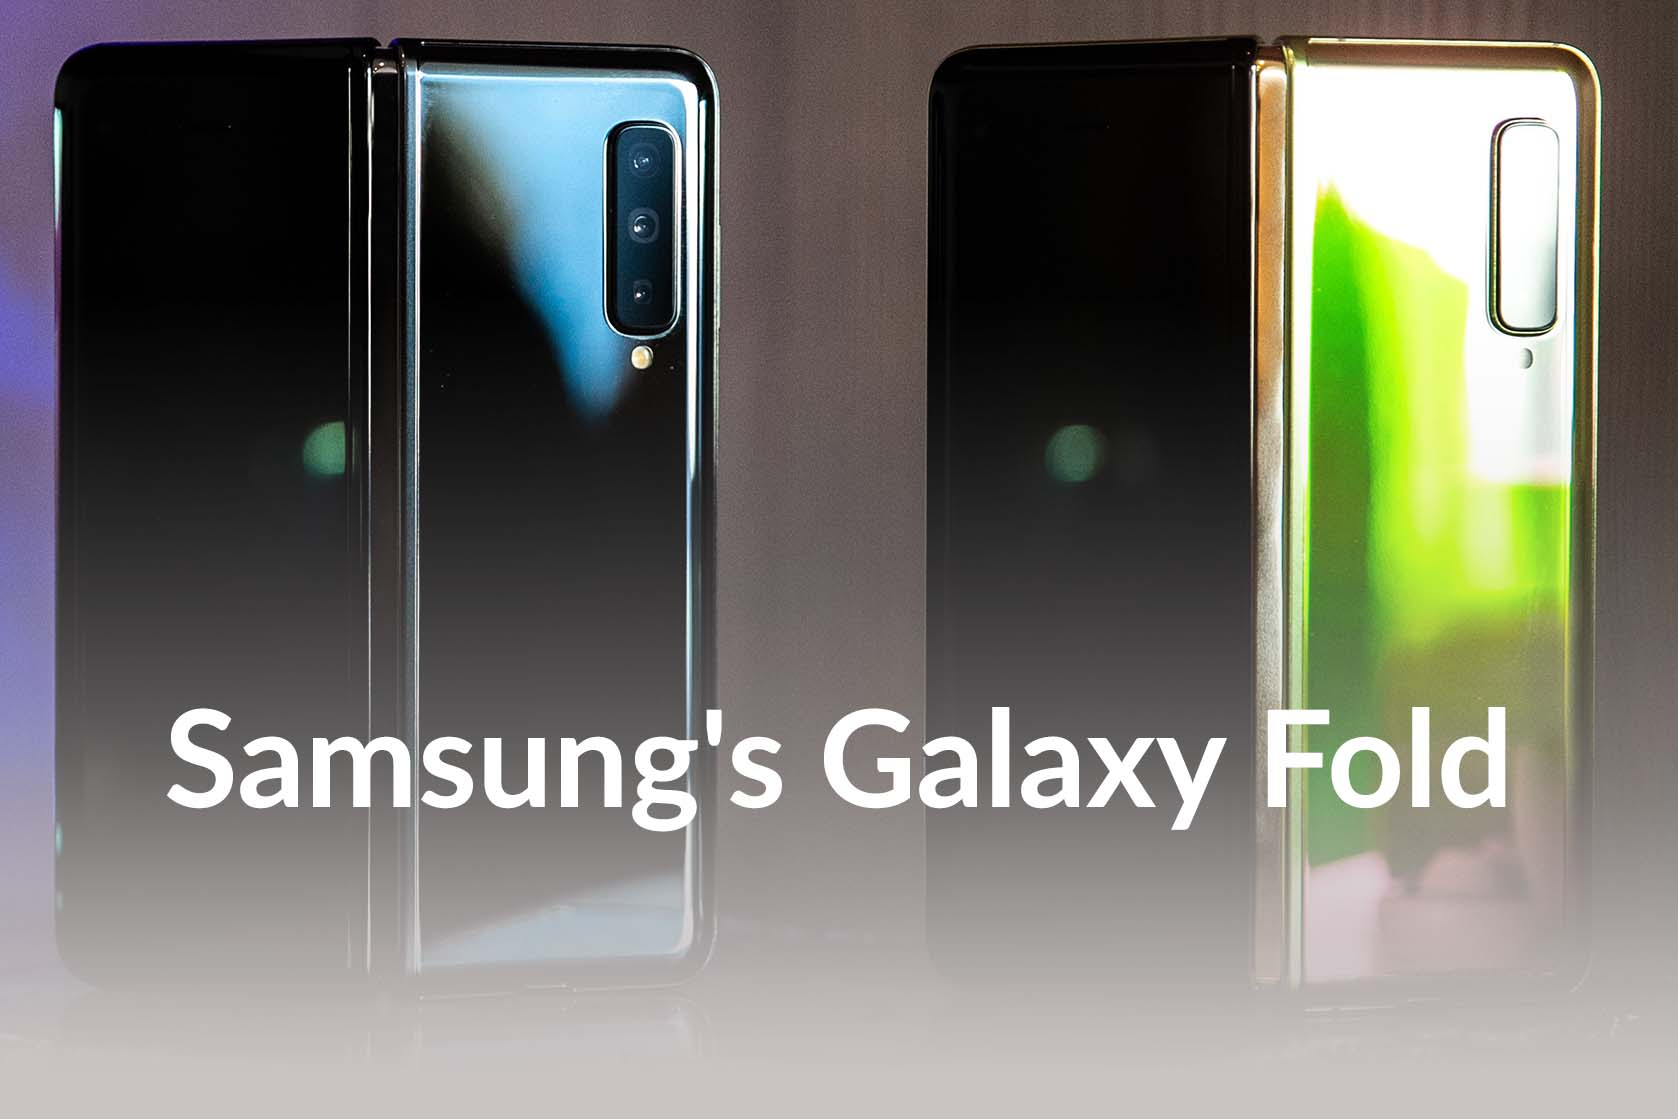 Samsung to Launch Galaxy Fold after fix in September